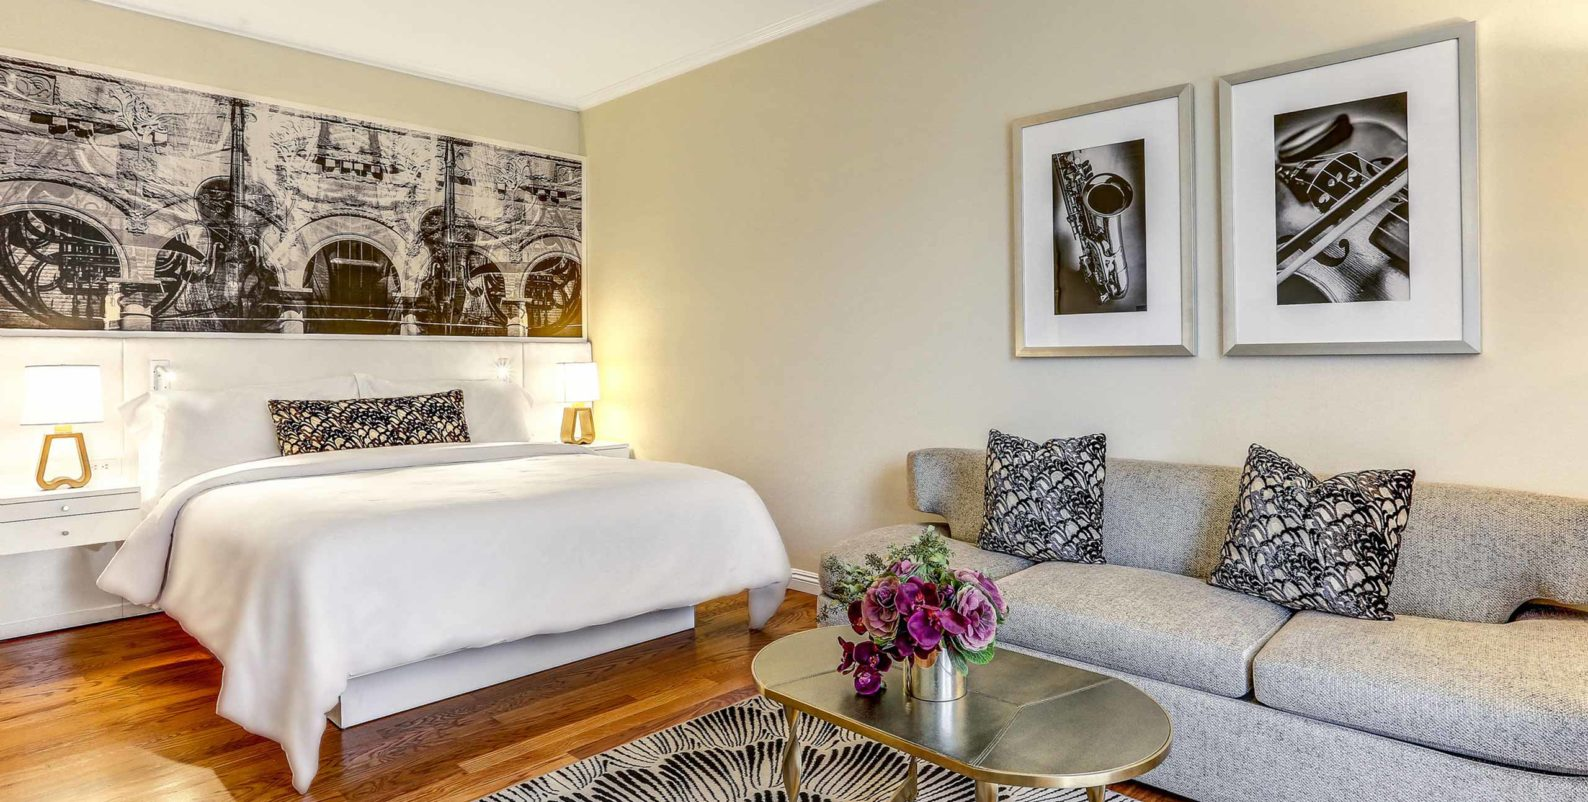 Deluxe King Room at Avenue of the Arts Costa Mesa